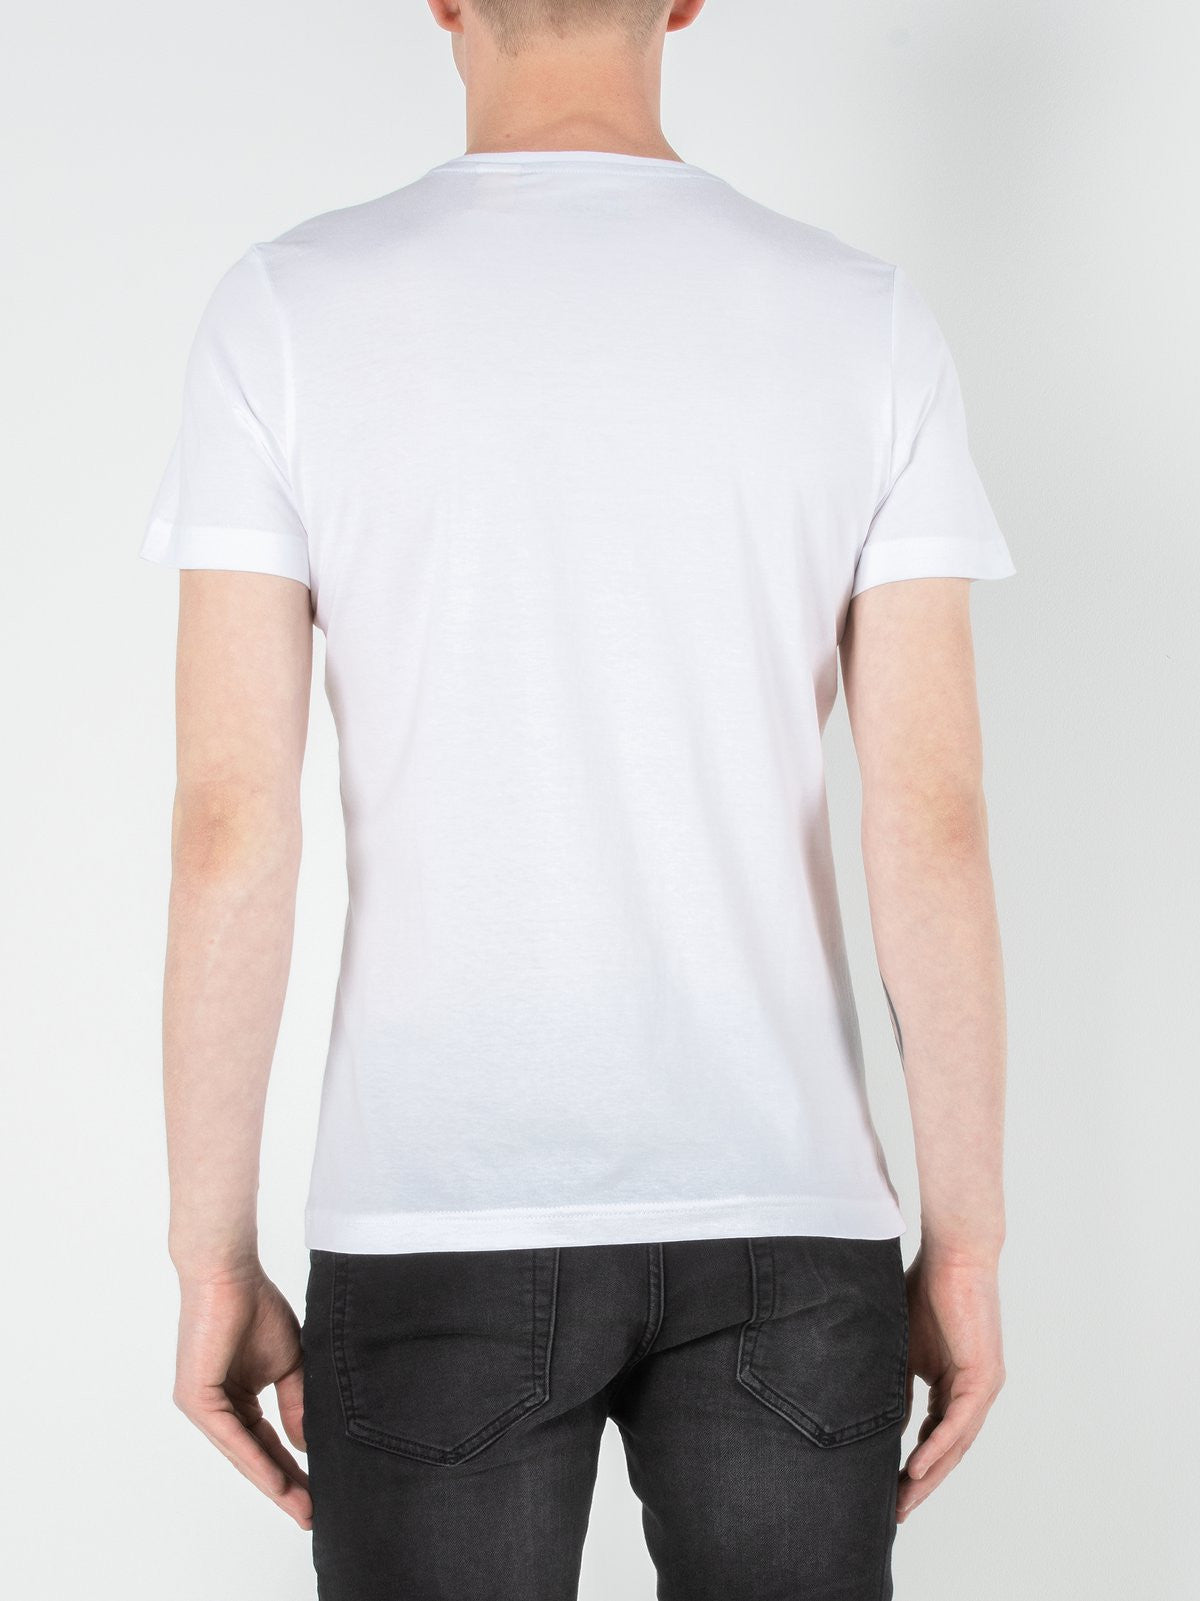 T.Shirt with Print | White